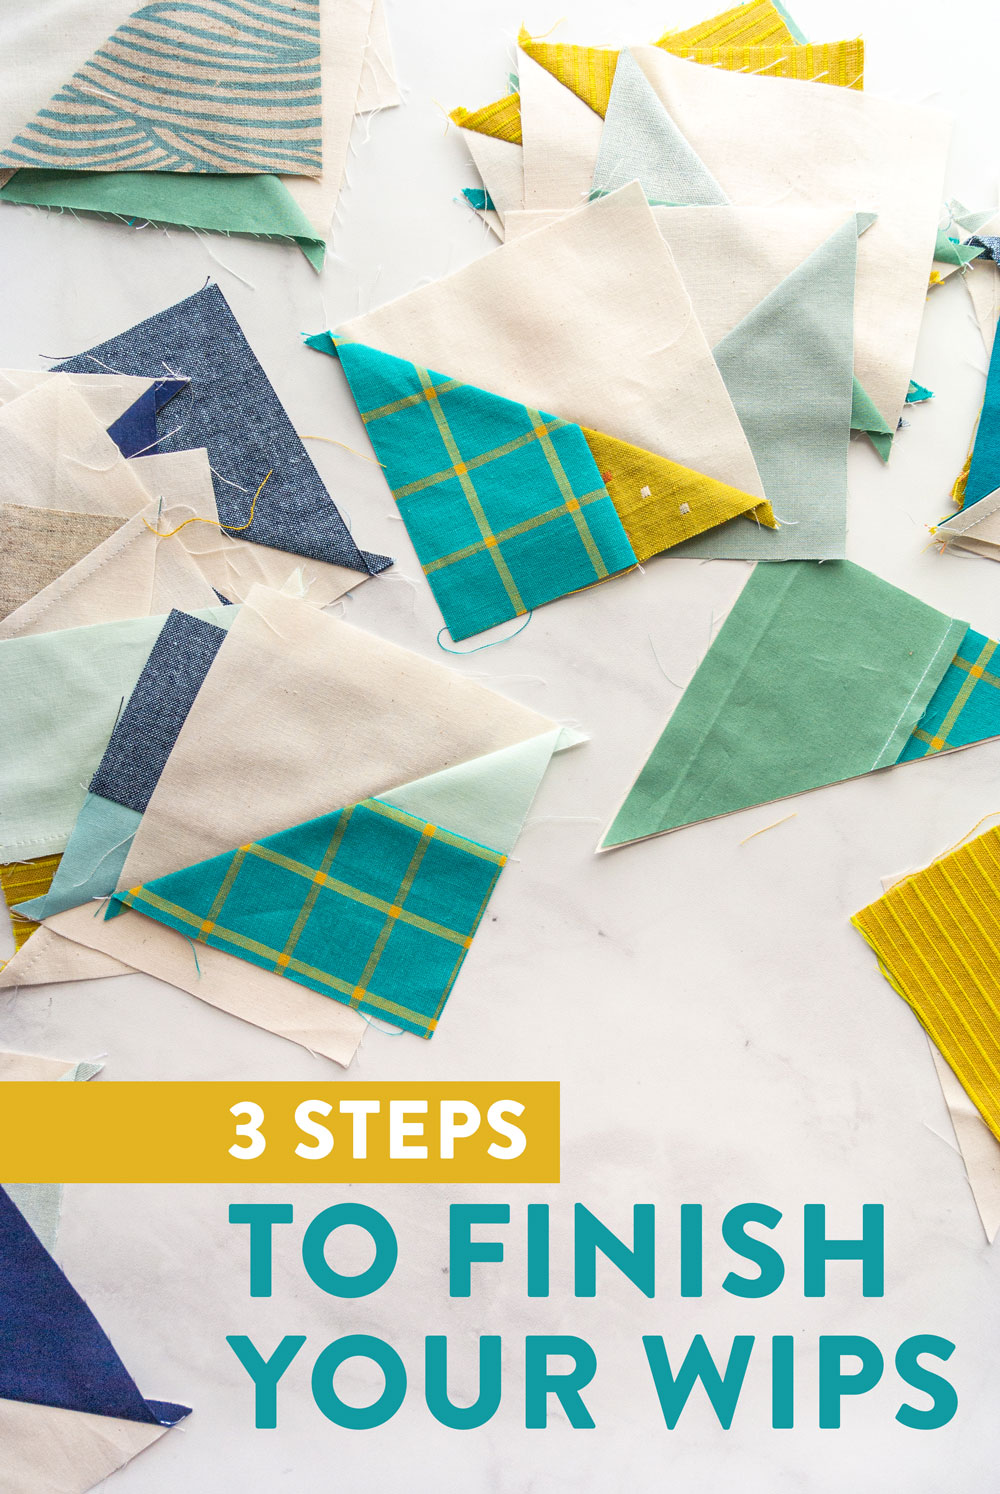 Finish your sewing WIPs! Quilters and crafters notoriously have multiple works in progress, or WIPs. These 3 steps will help you sift through those WIPs, clear them out or get them finished! suzyquilts.com #sewing #WIPs #HST